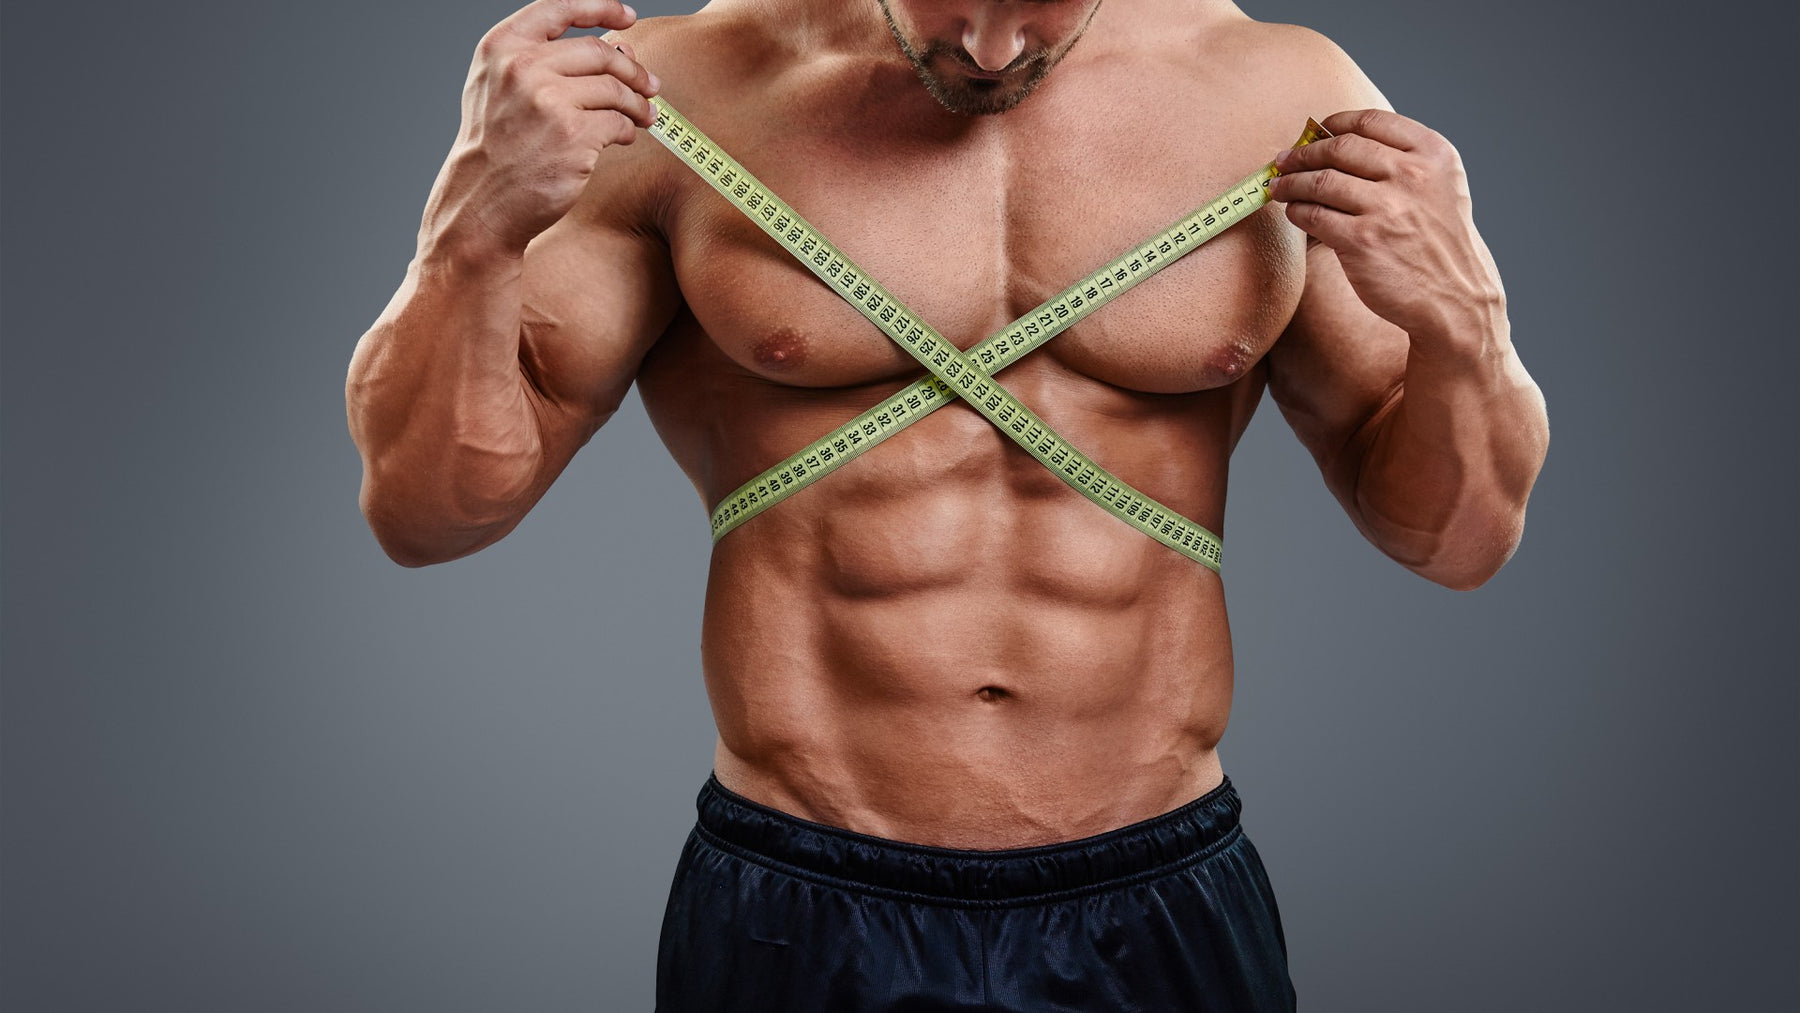 The Only 4 Fat Loss Hacks You Need to Worry About